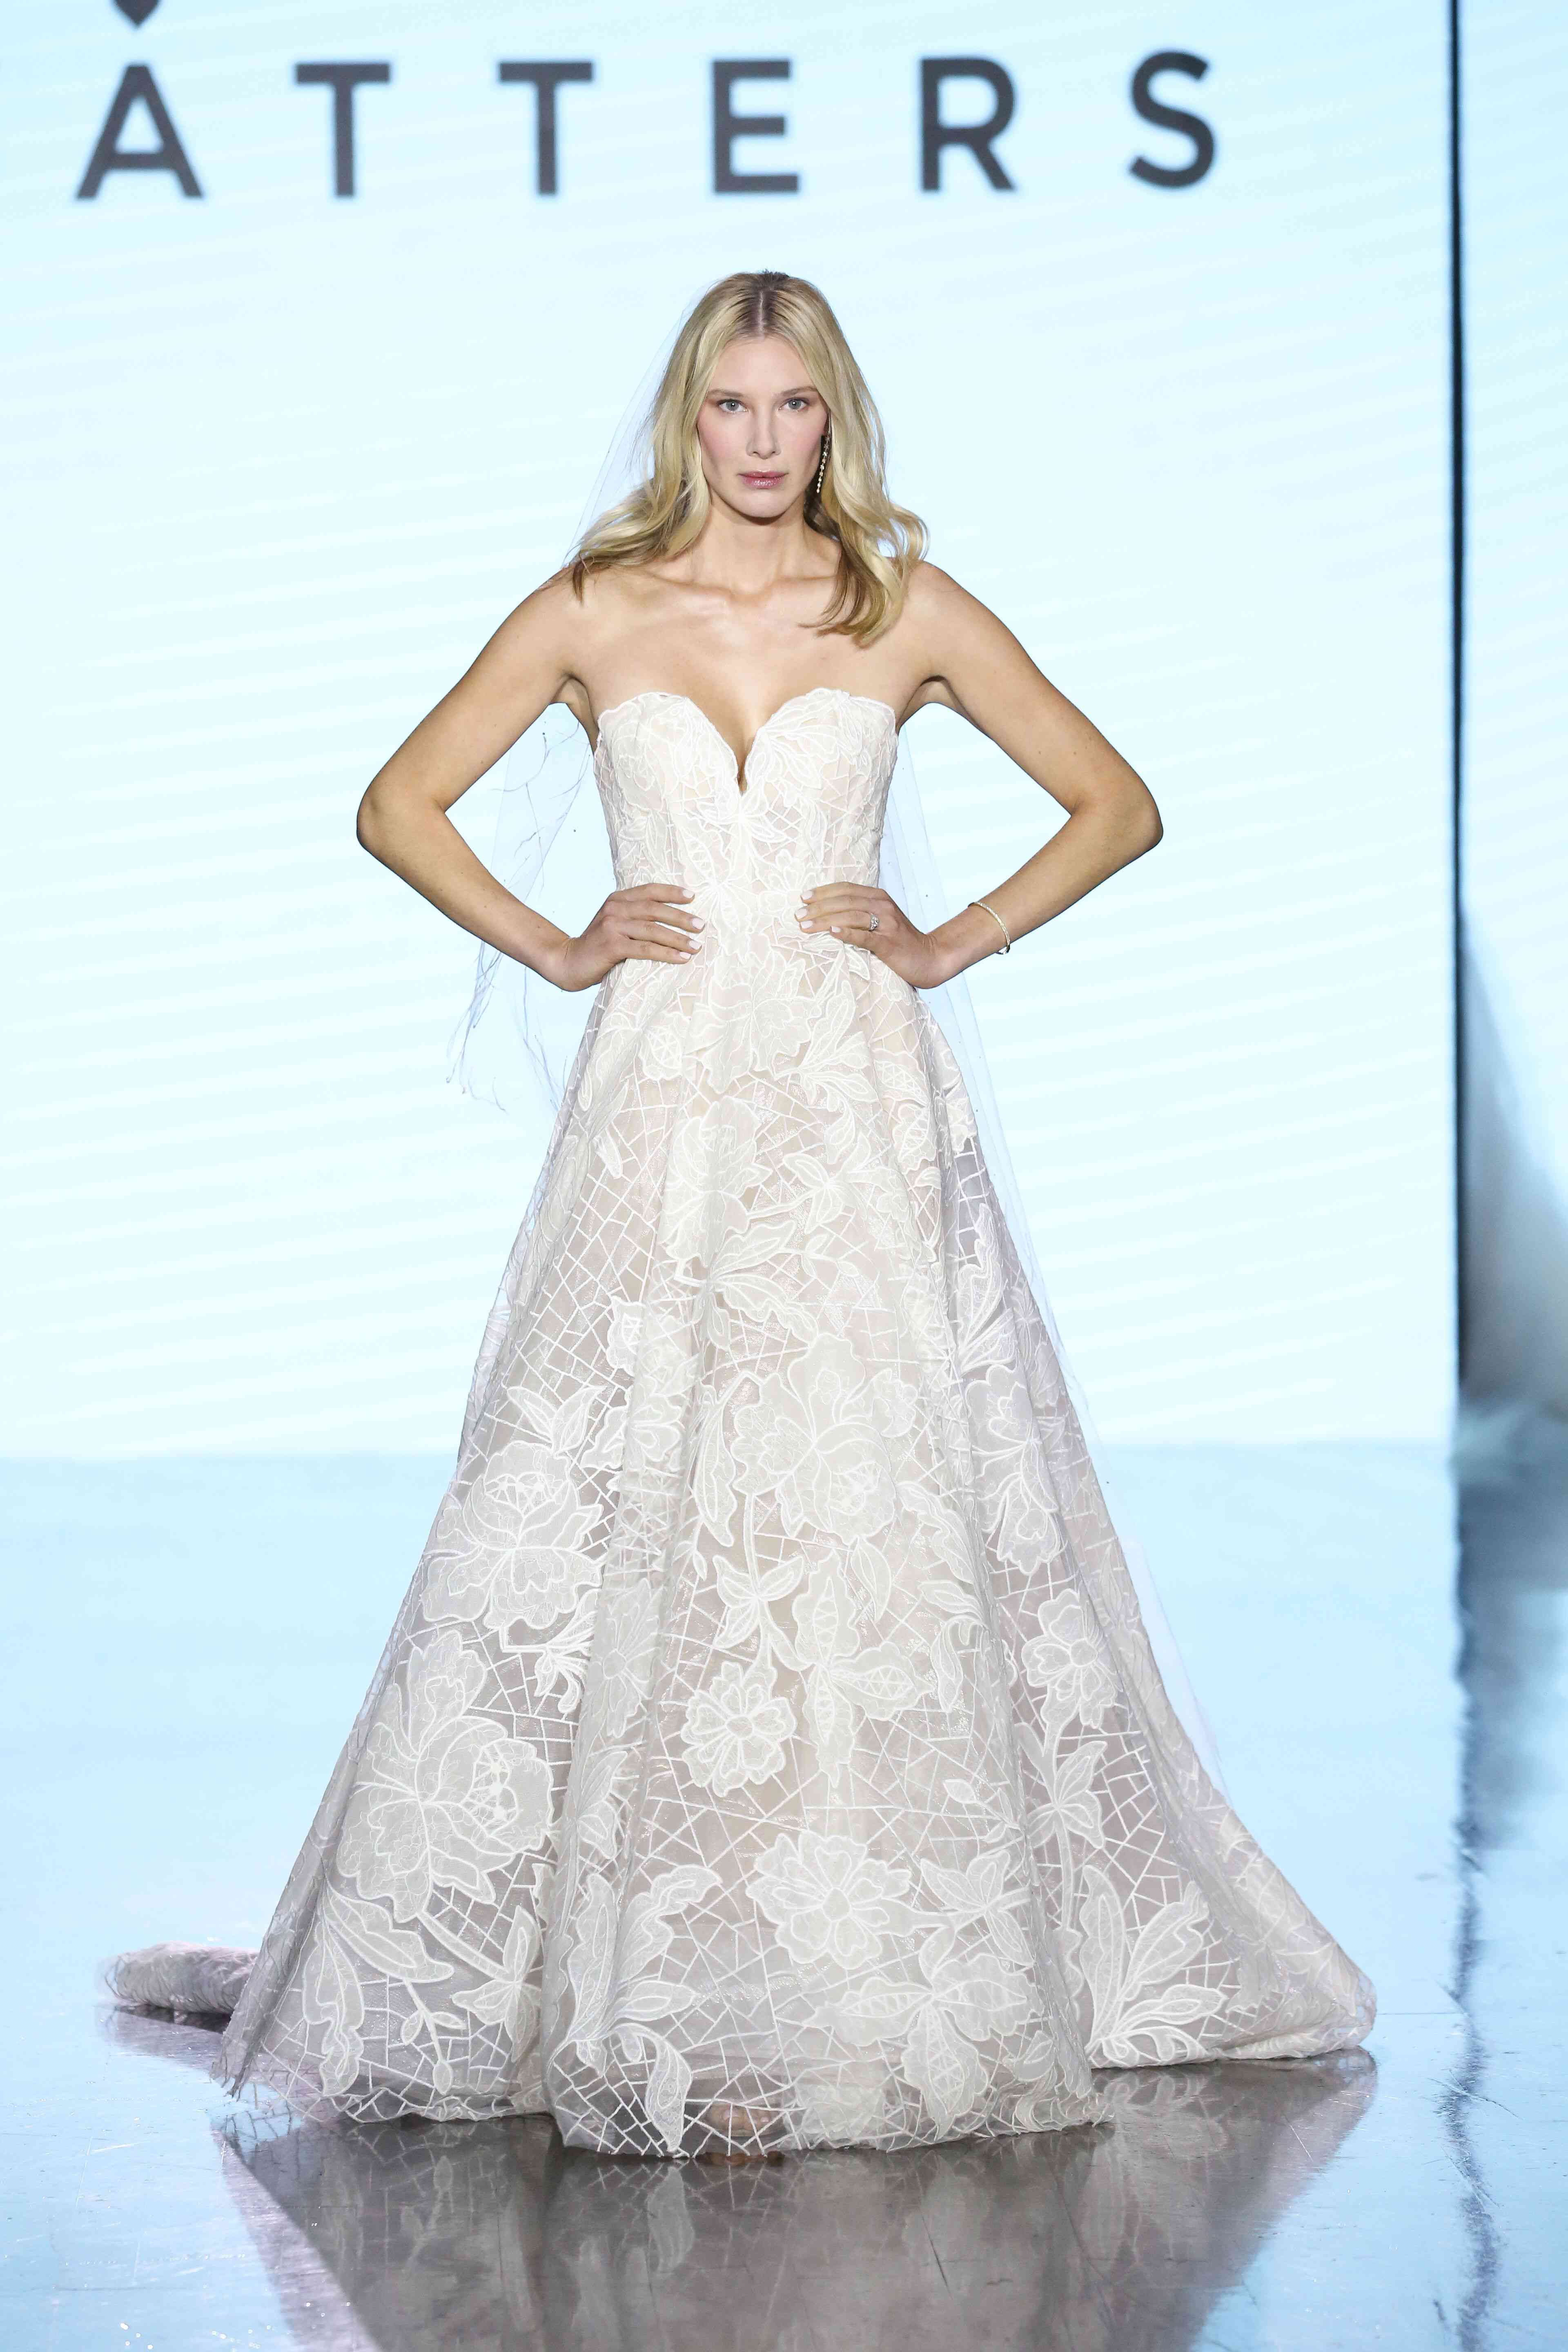 Model on runway in a strapless sweetheart floral lace A-line wedding dress